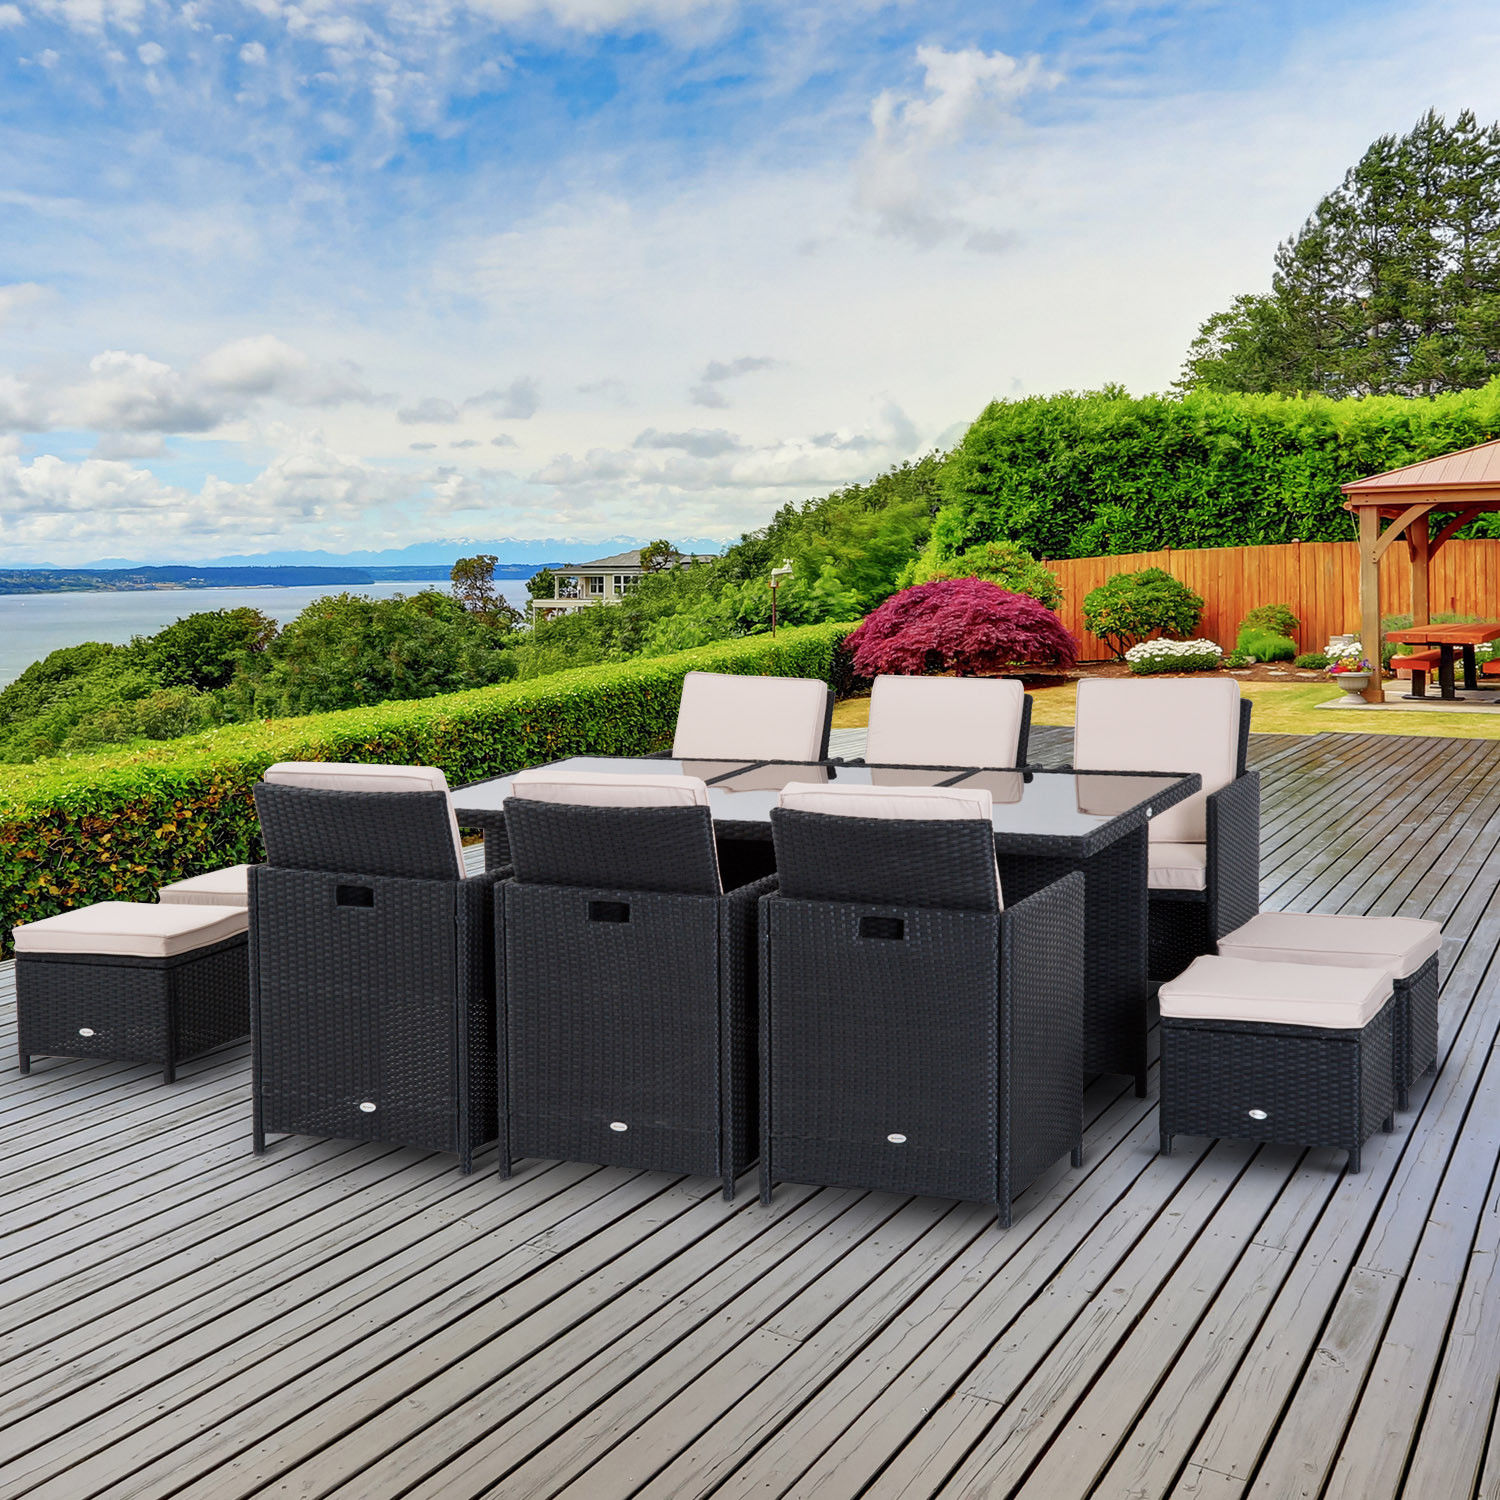 Image of £569.99 Outsunny Rattan Furniture Set, Aluminium, 11 Pieces-Black / 11pc Garden Outdoor Patio Dining Set Cube Sofa Weave Wicker 6 Chairs 4 Footrests & 1 Table Black Pieces Cushion Footrest Brown 861-031BK 5056029887585